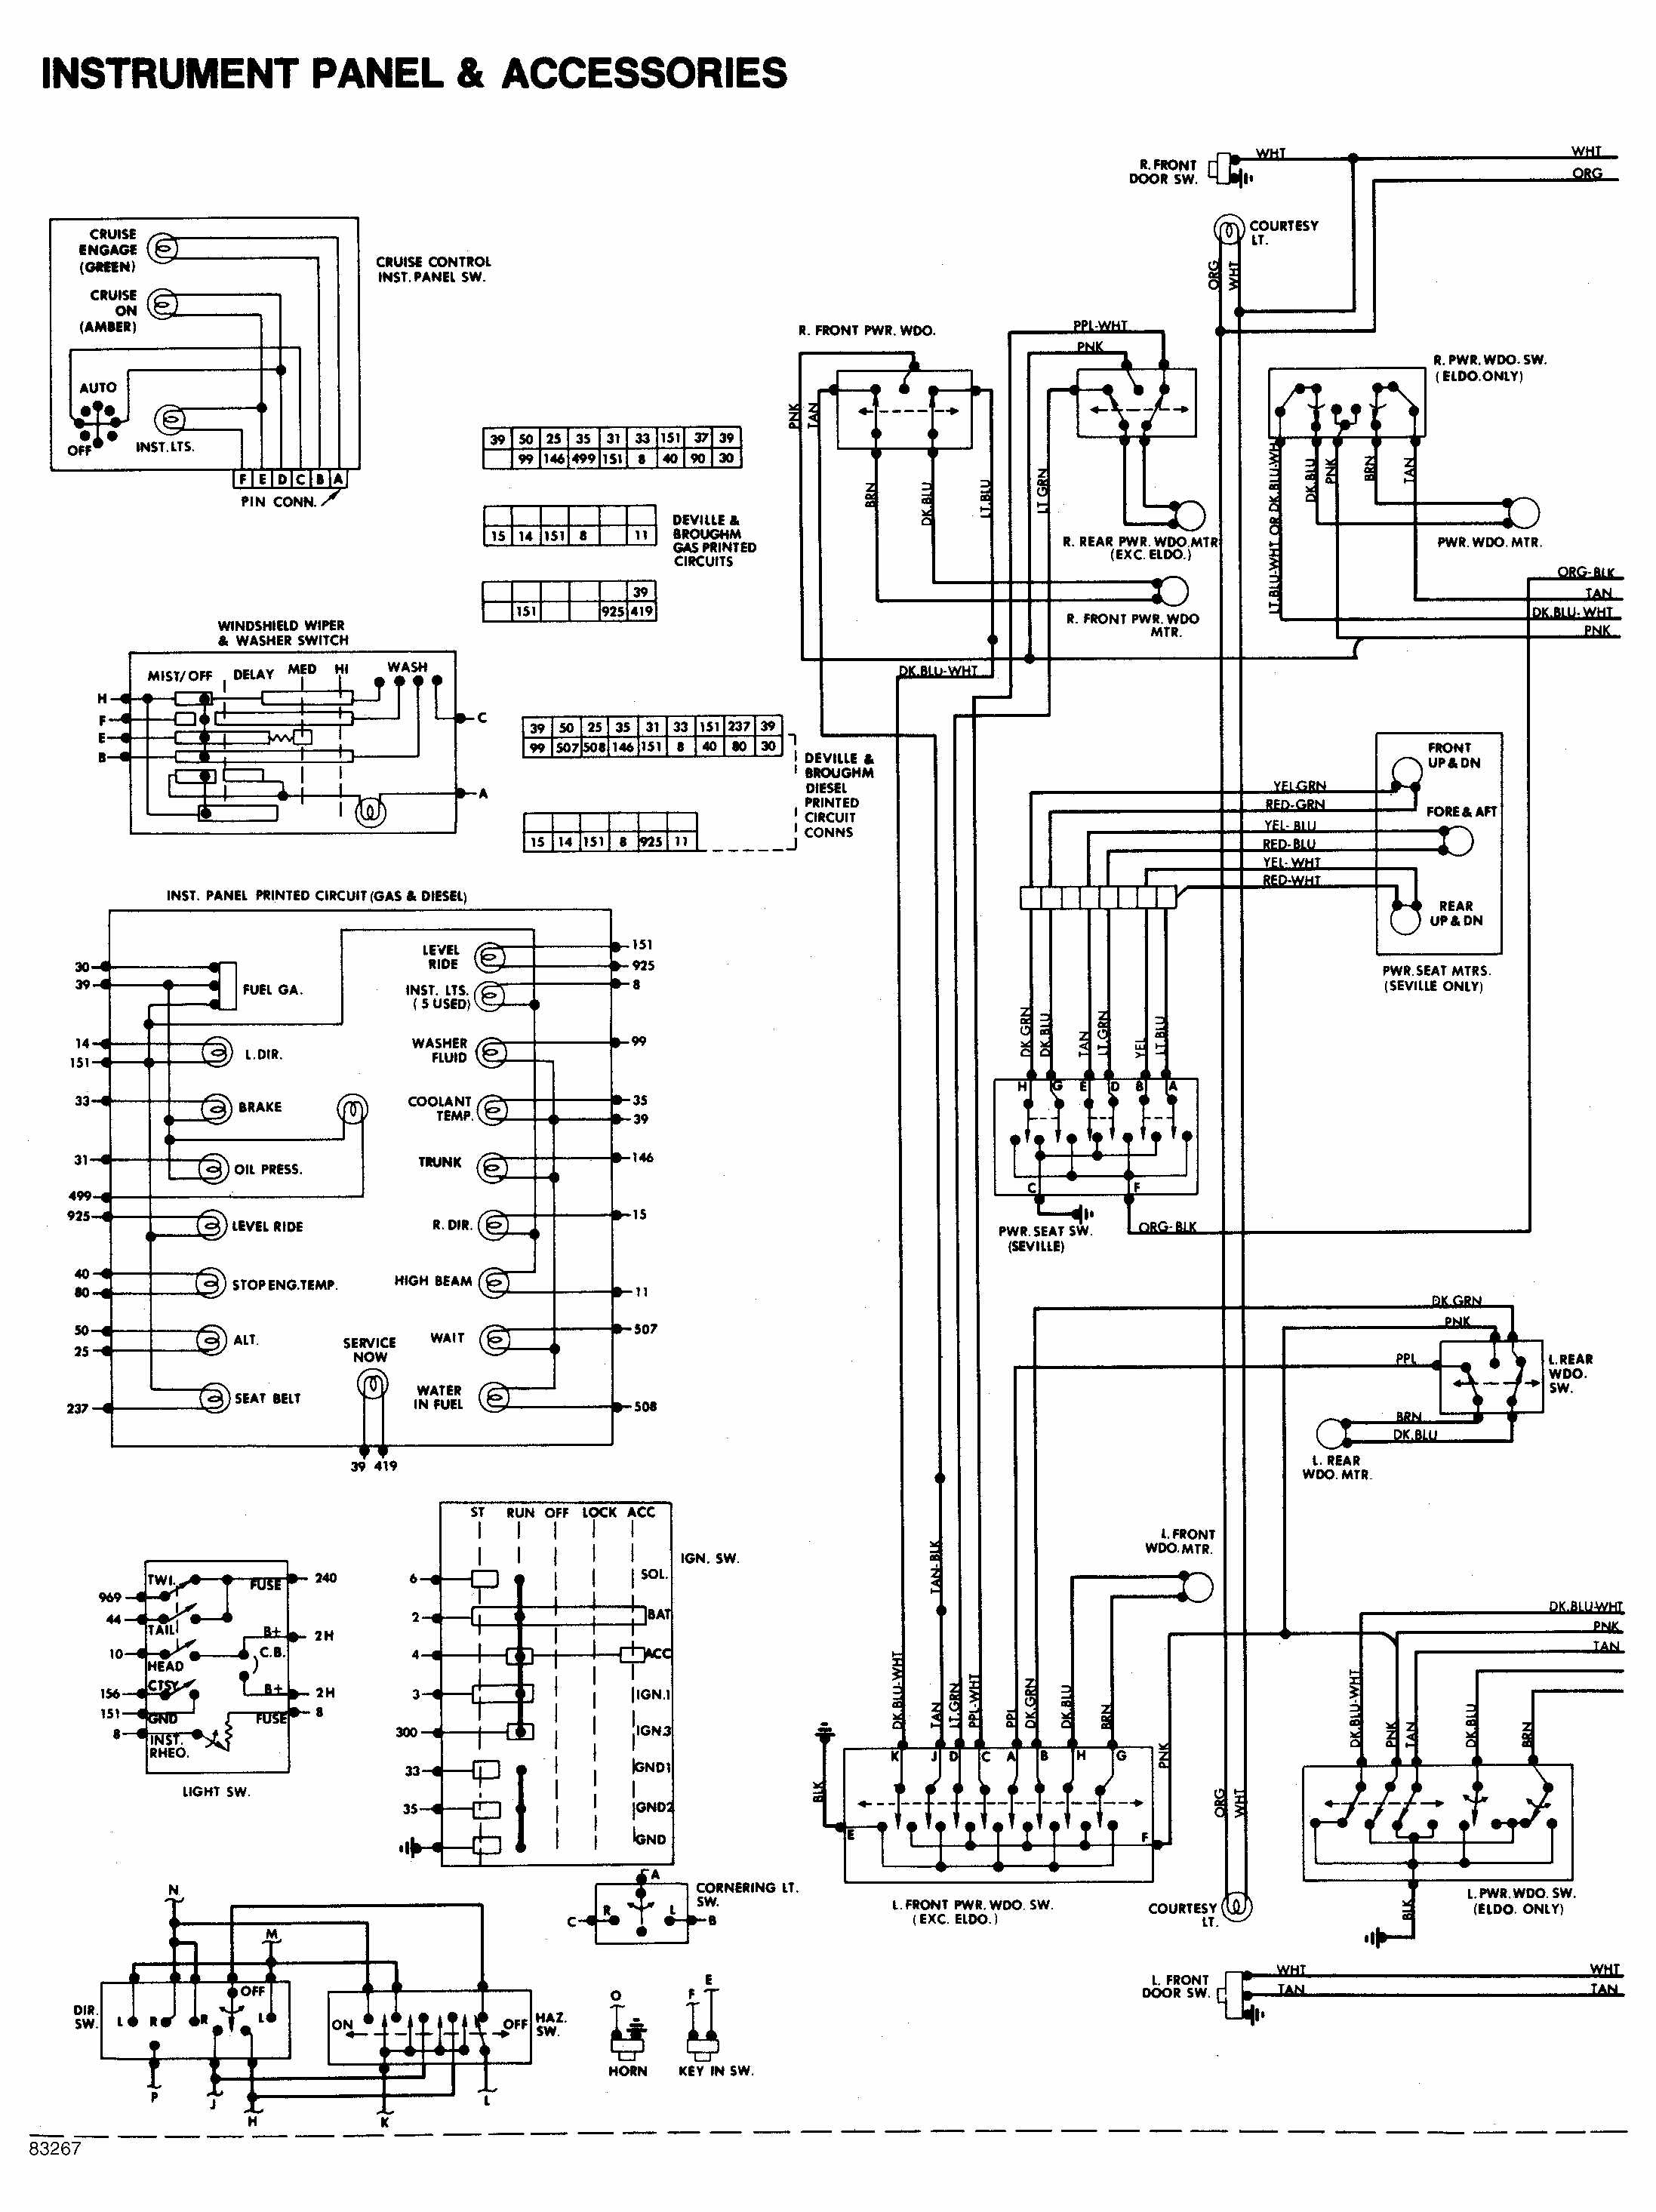 79 Chevy Truck Wiring Diagram Will Be A Thing 1977 C10 Diagrams 1979 Steering Column Headlight